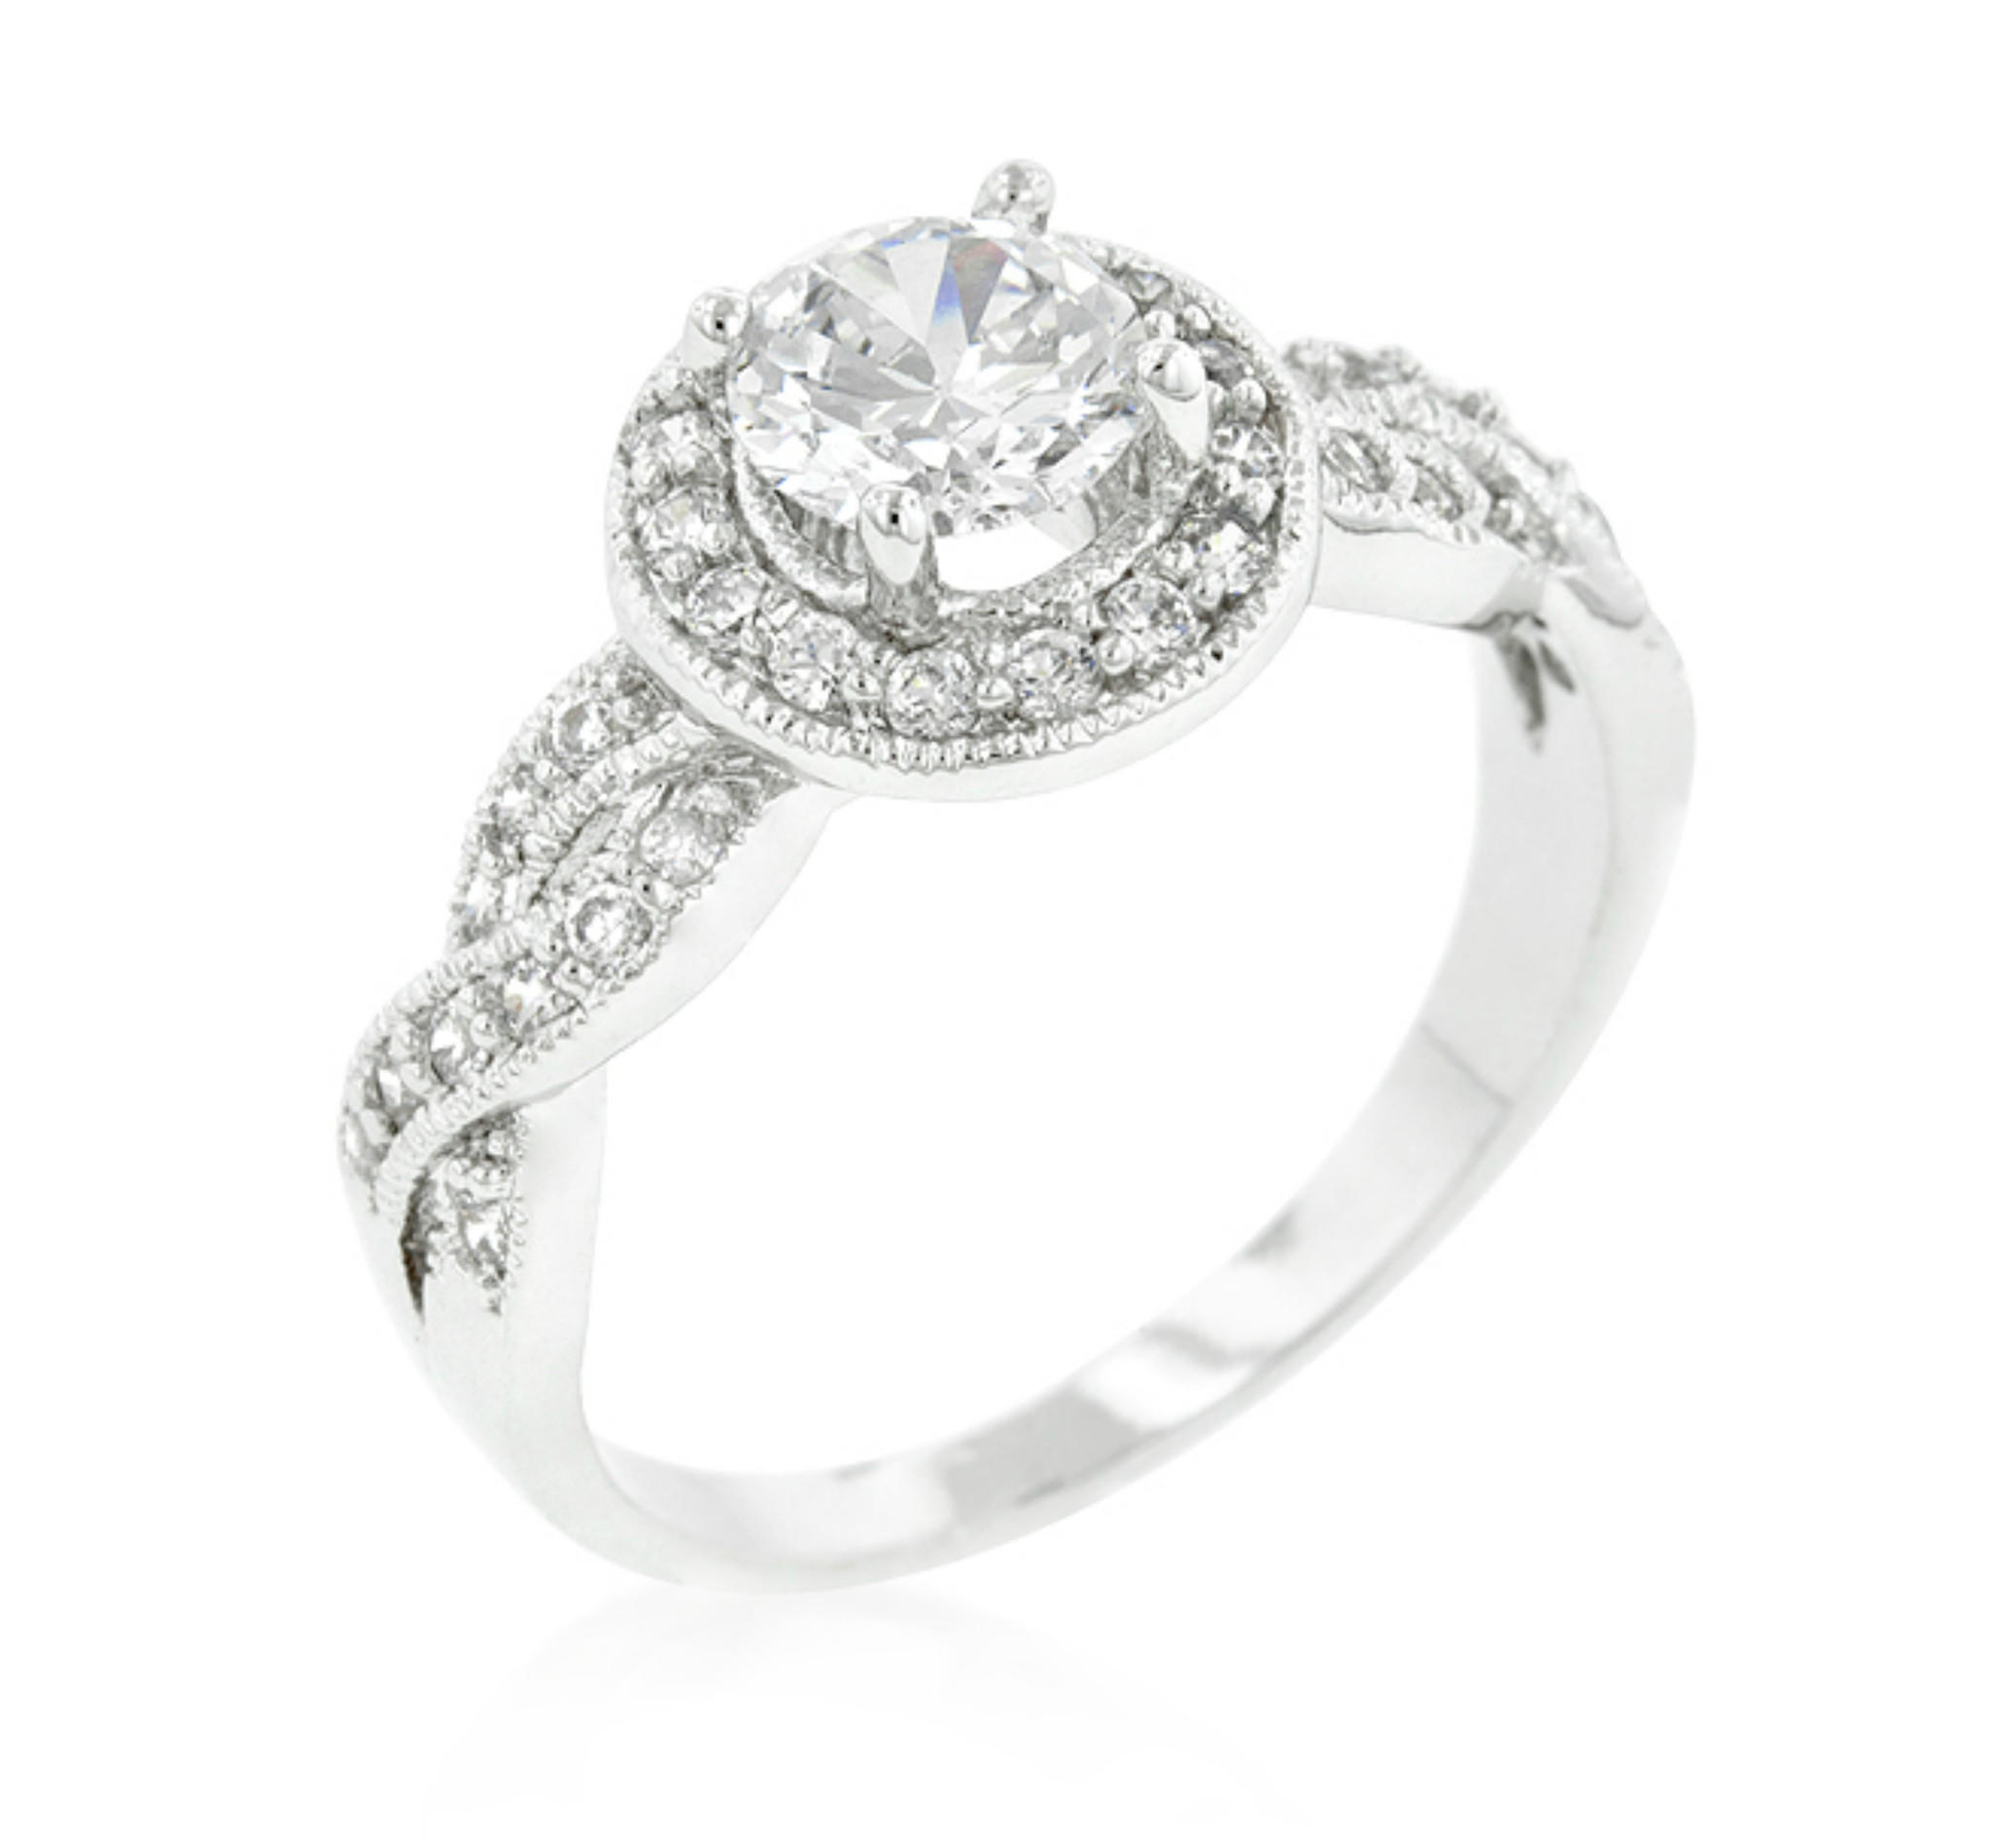 engagement product semi mount ring rings classic diamond s jewelry fine down patrick